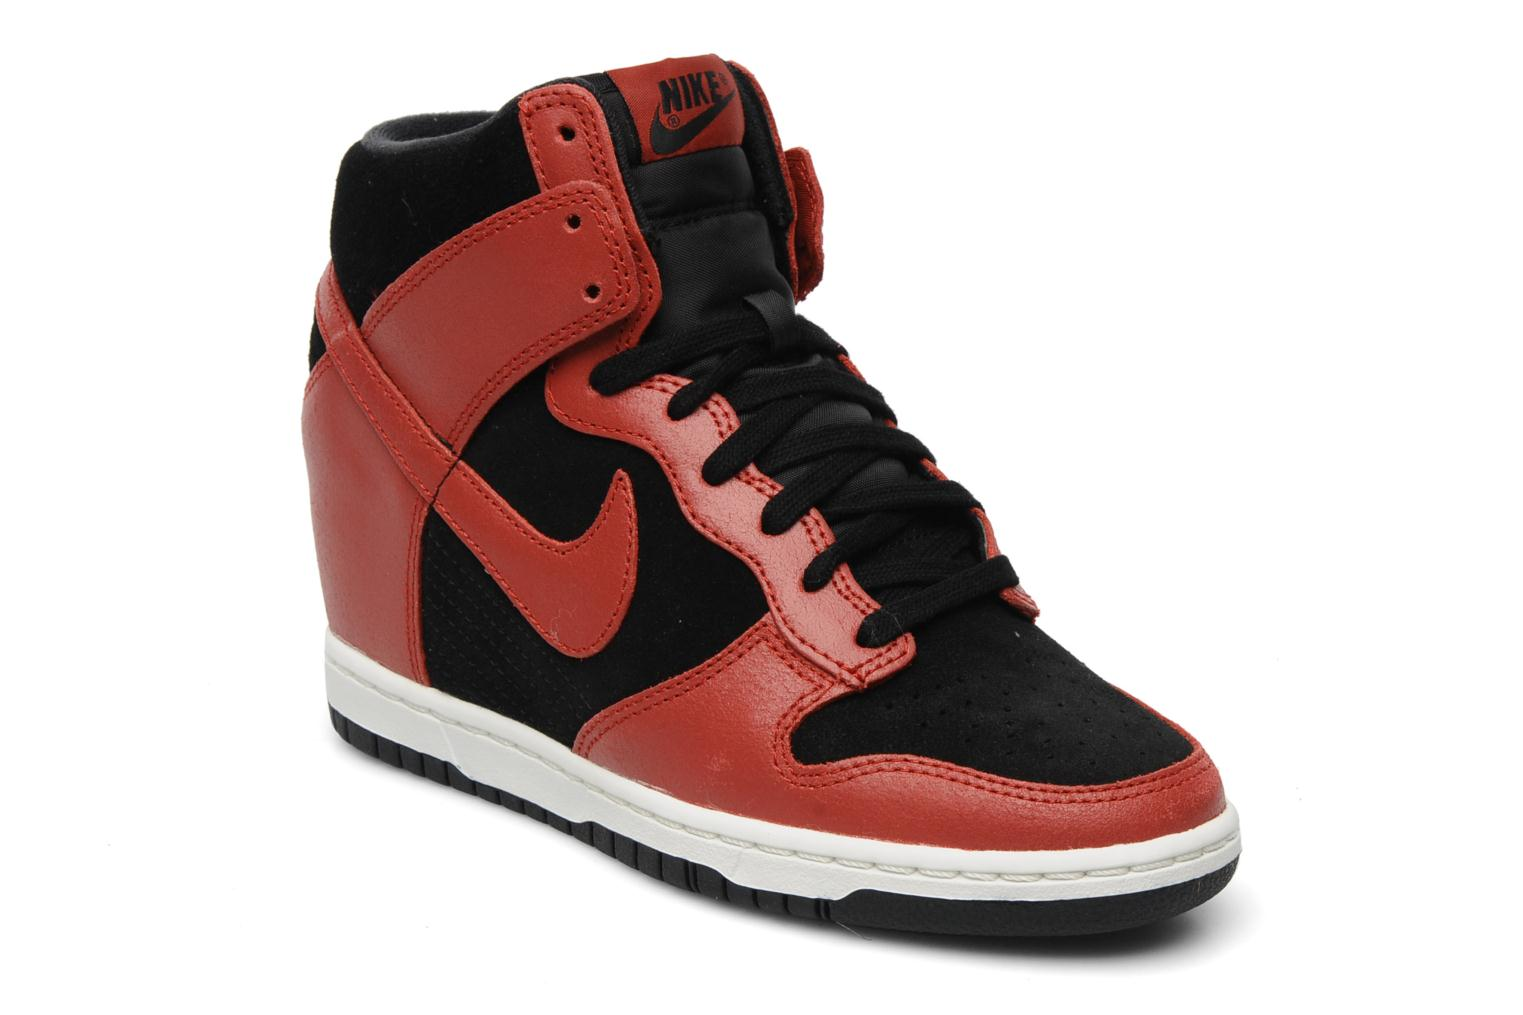 Dunk sky high Black-Gym Red-Sail